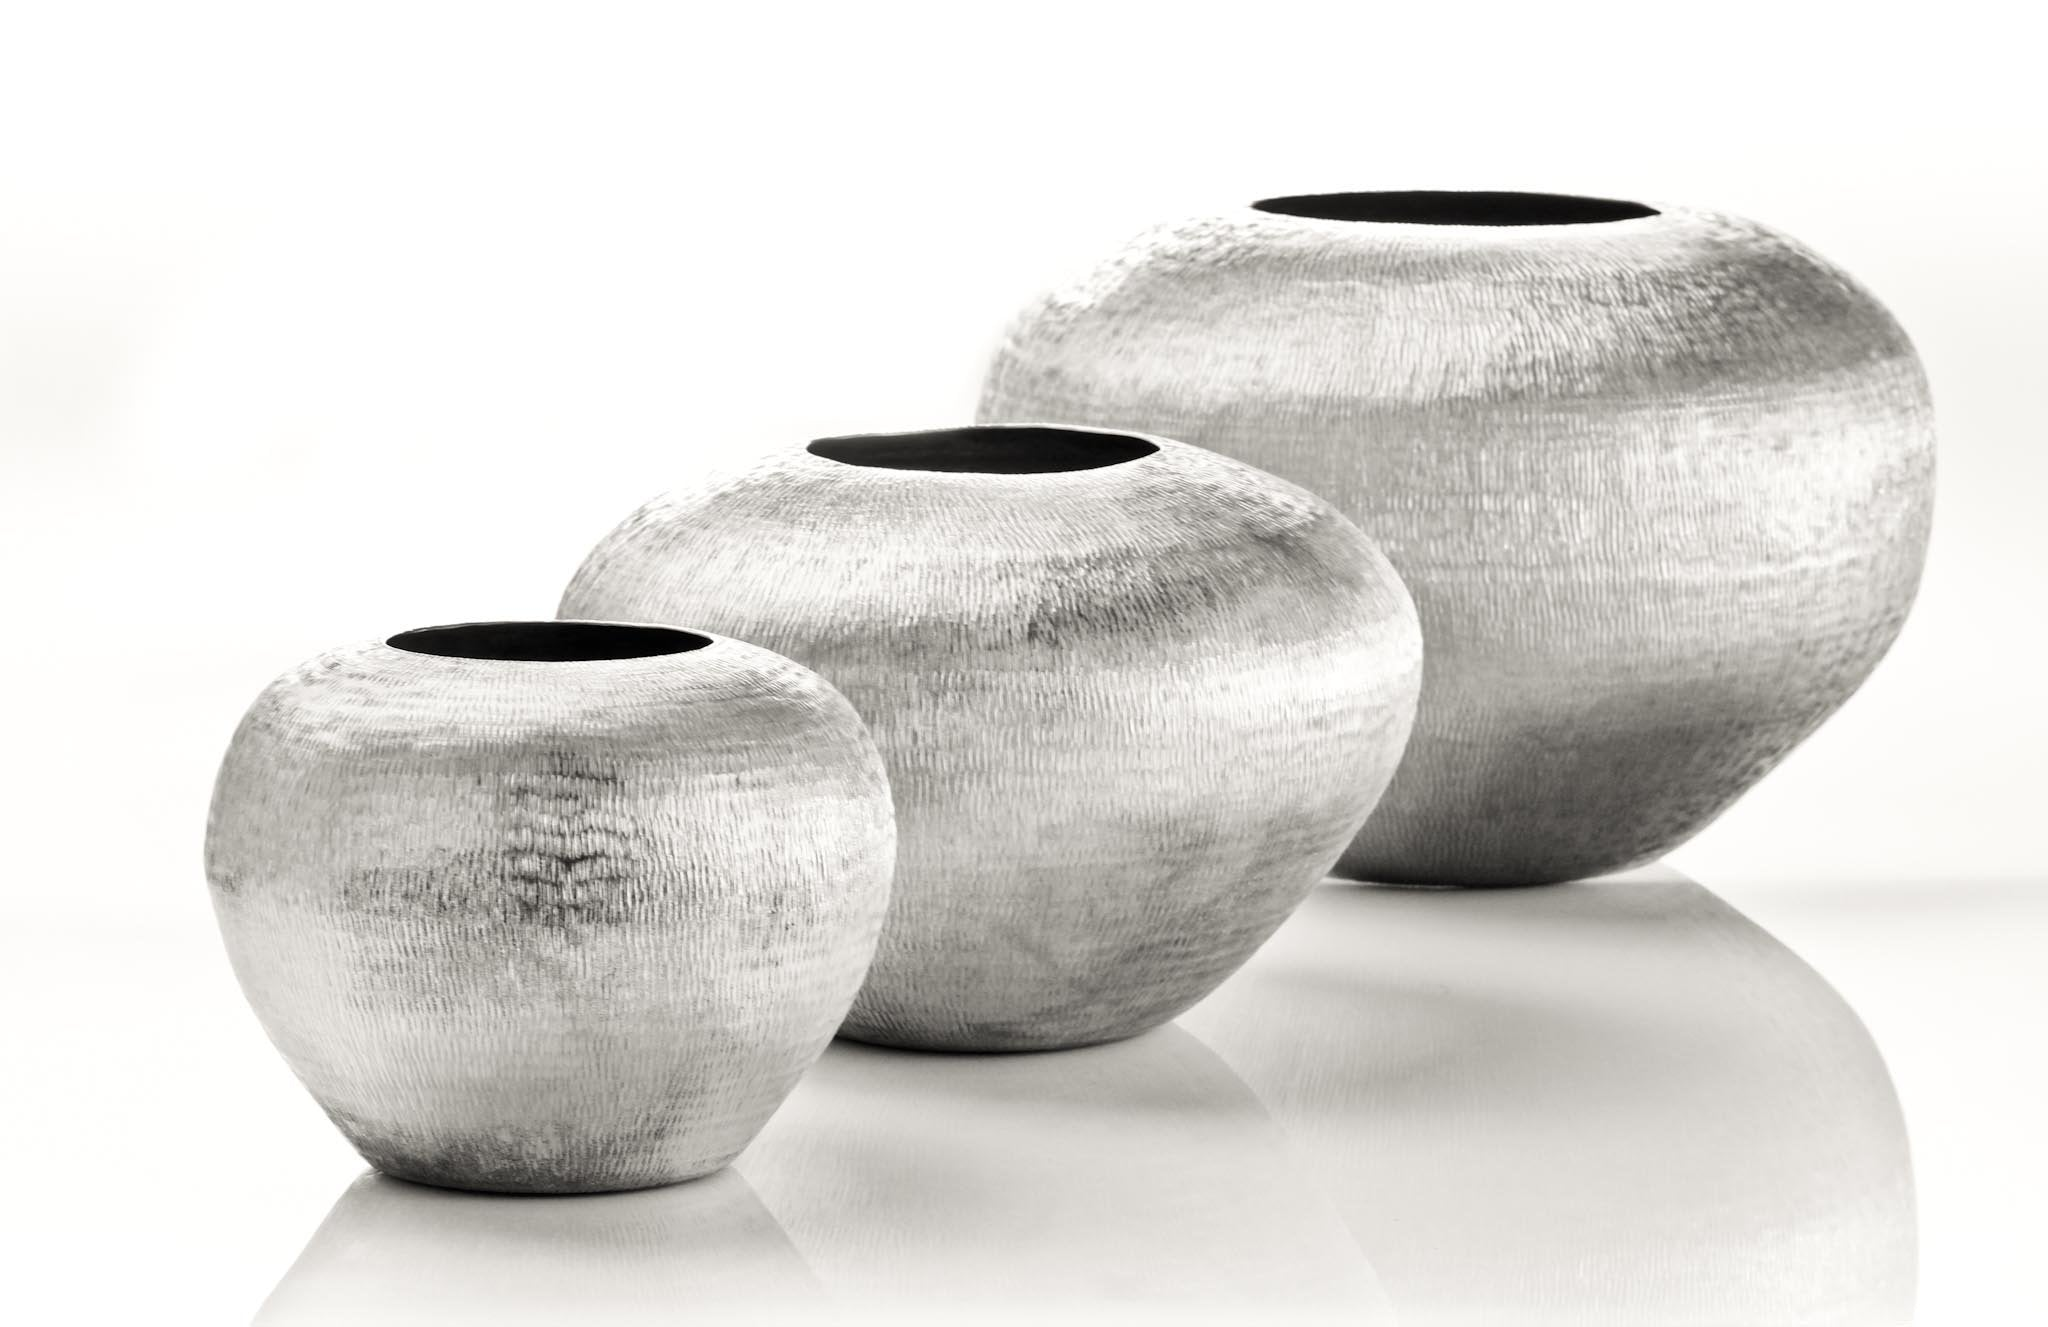 Cebolla Silver - Bowls - AmorettiBrothers